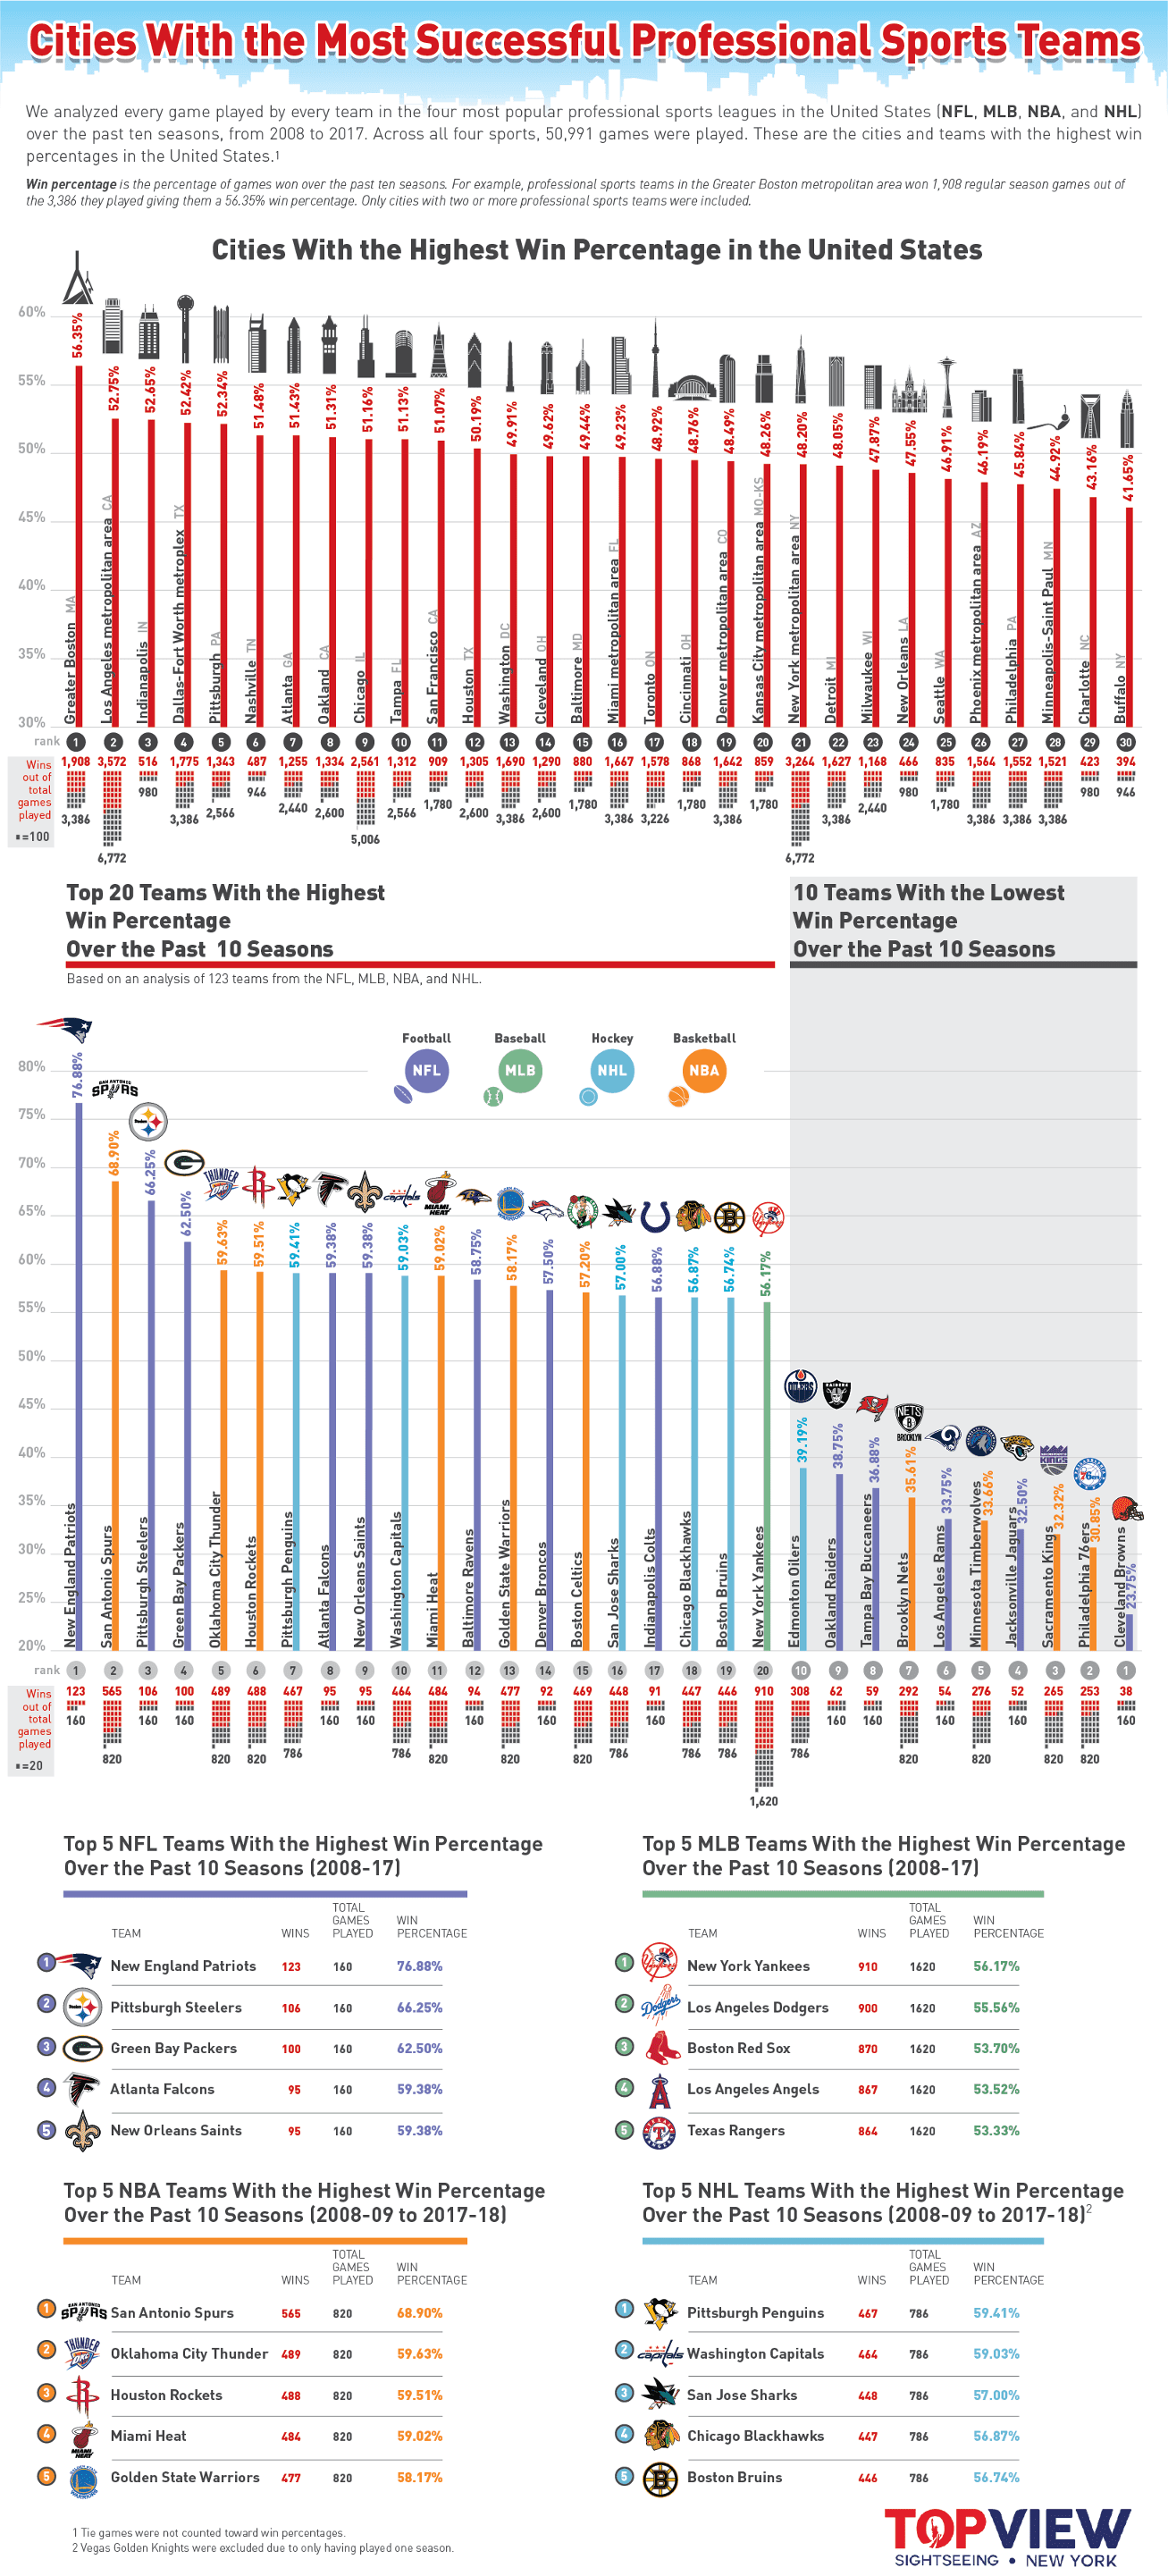 Cities and Teams With the Winningest Professional Sports Teams